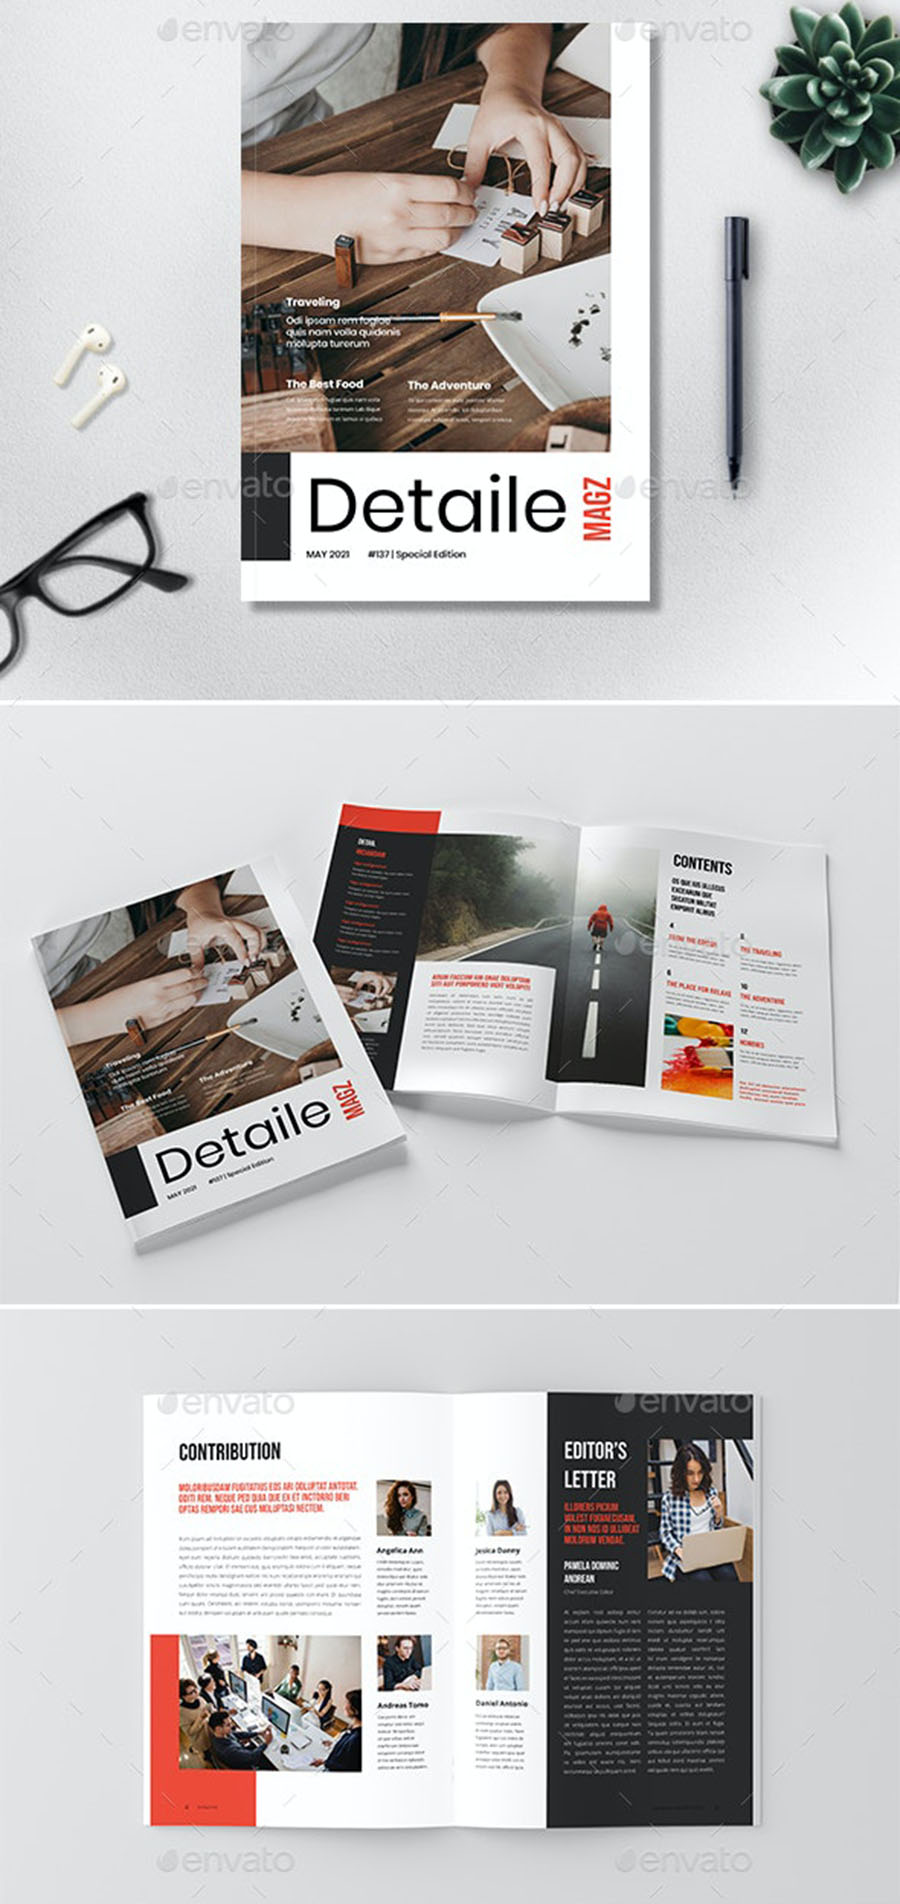 Detaile InDesign Magazine Template